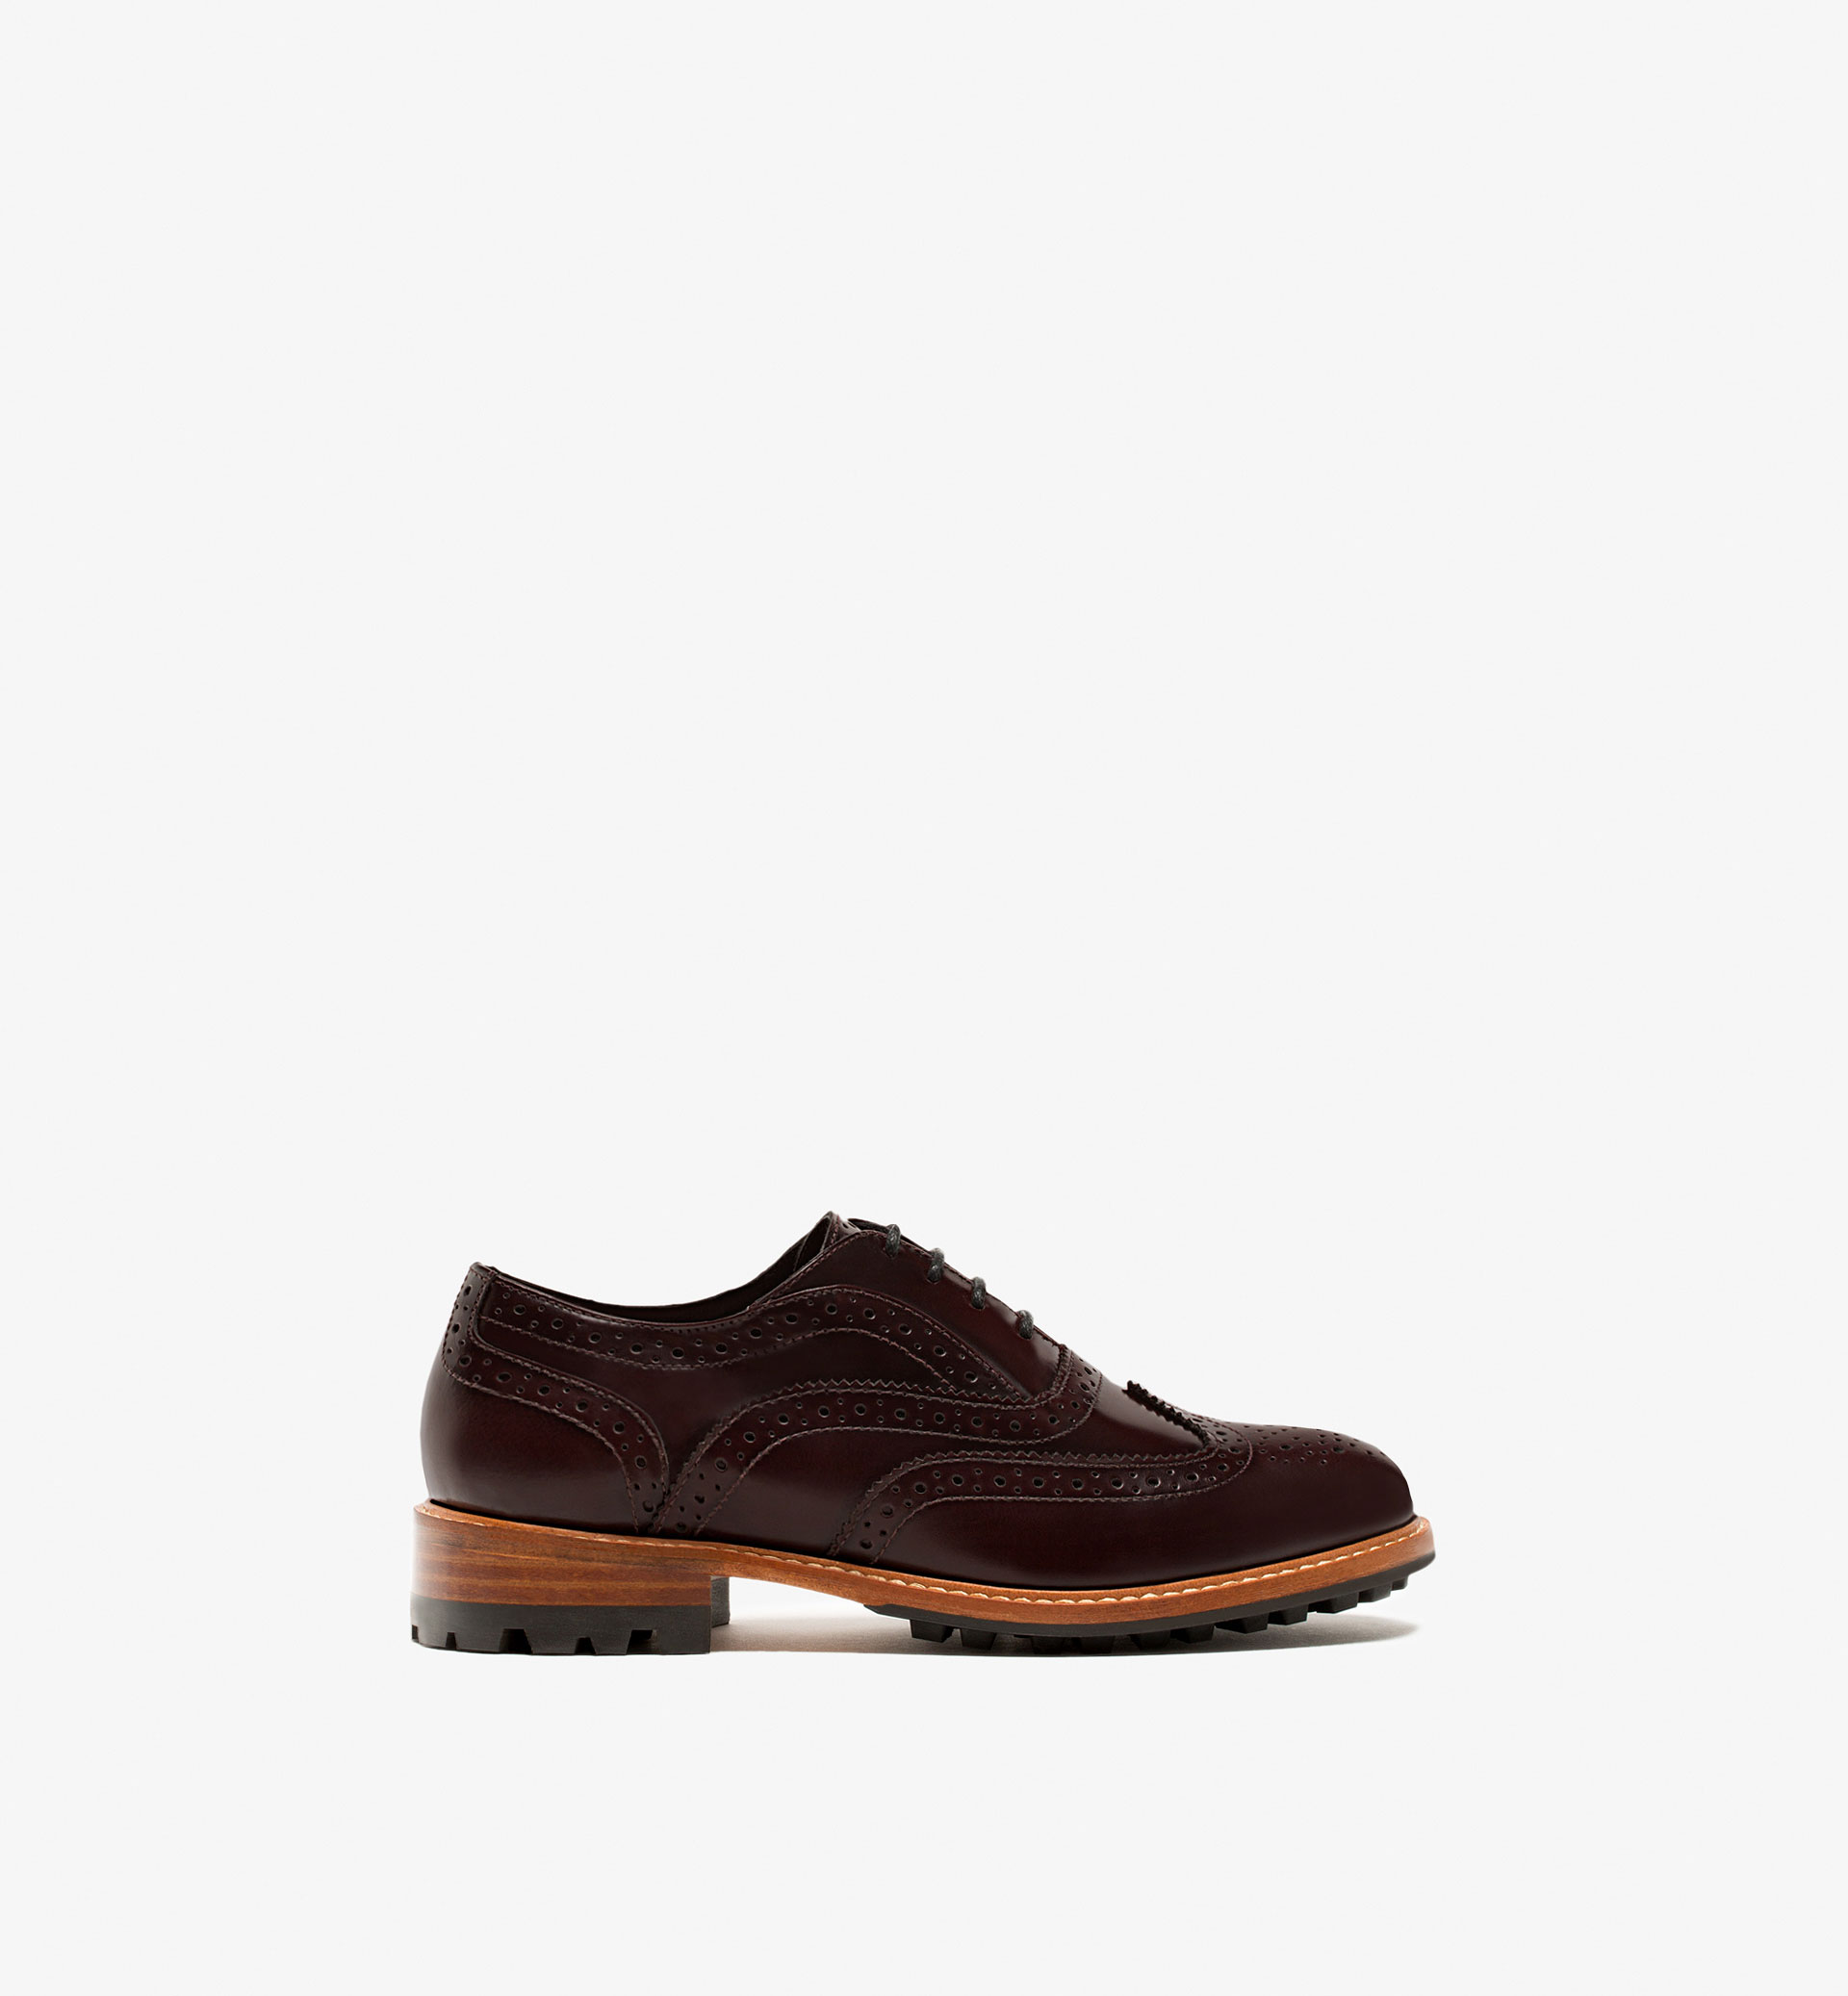 BURGUNDY ANTIK LEATHER OXFORD SHOES